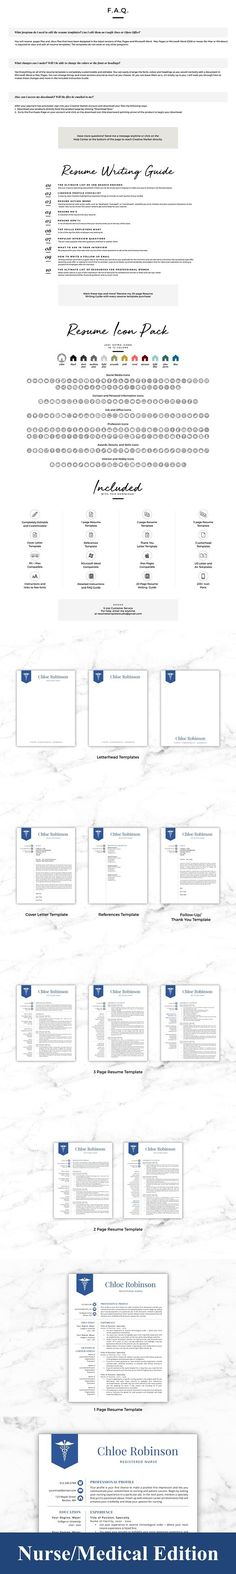 25 best Nursing Resume images on Pinterest Nursing career, Nursing